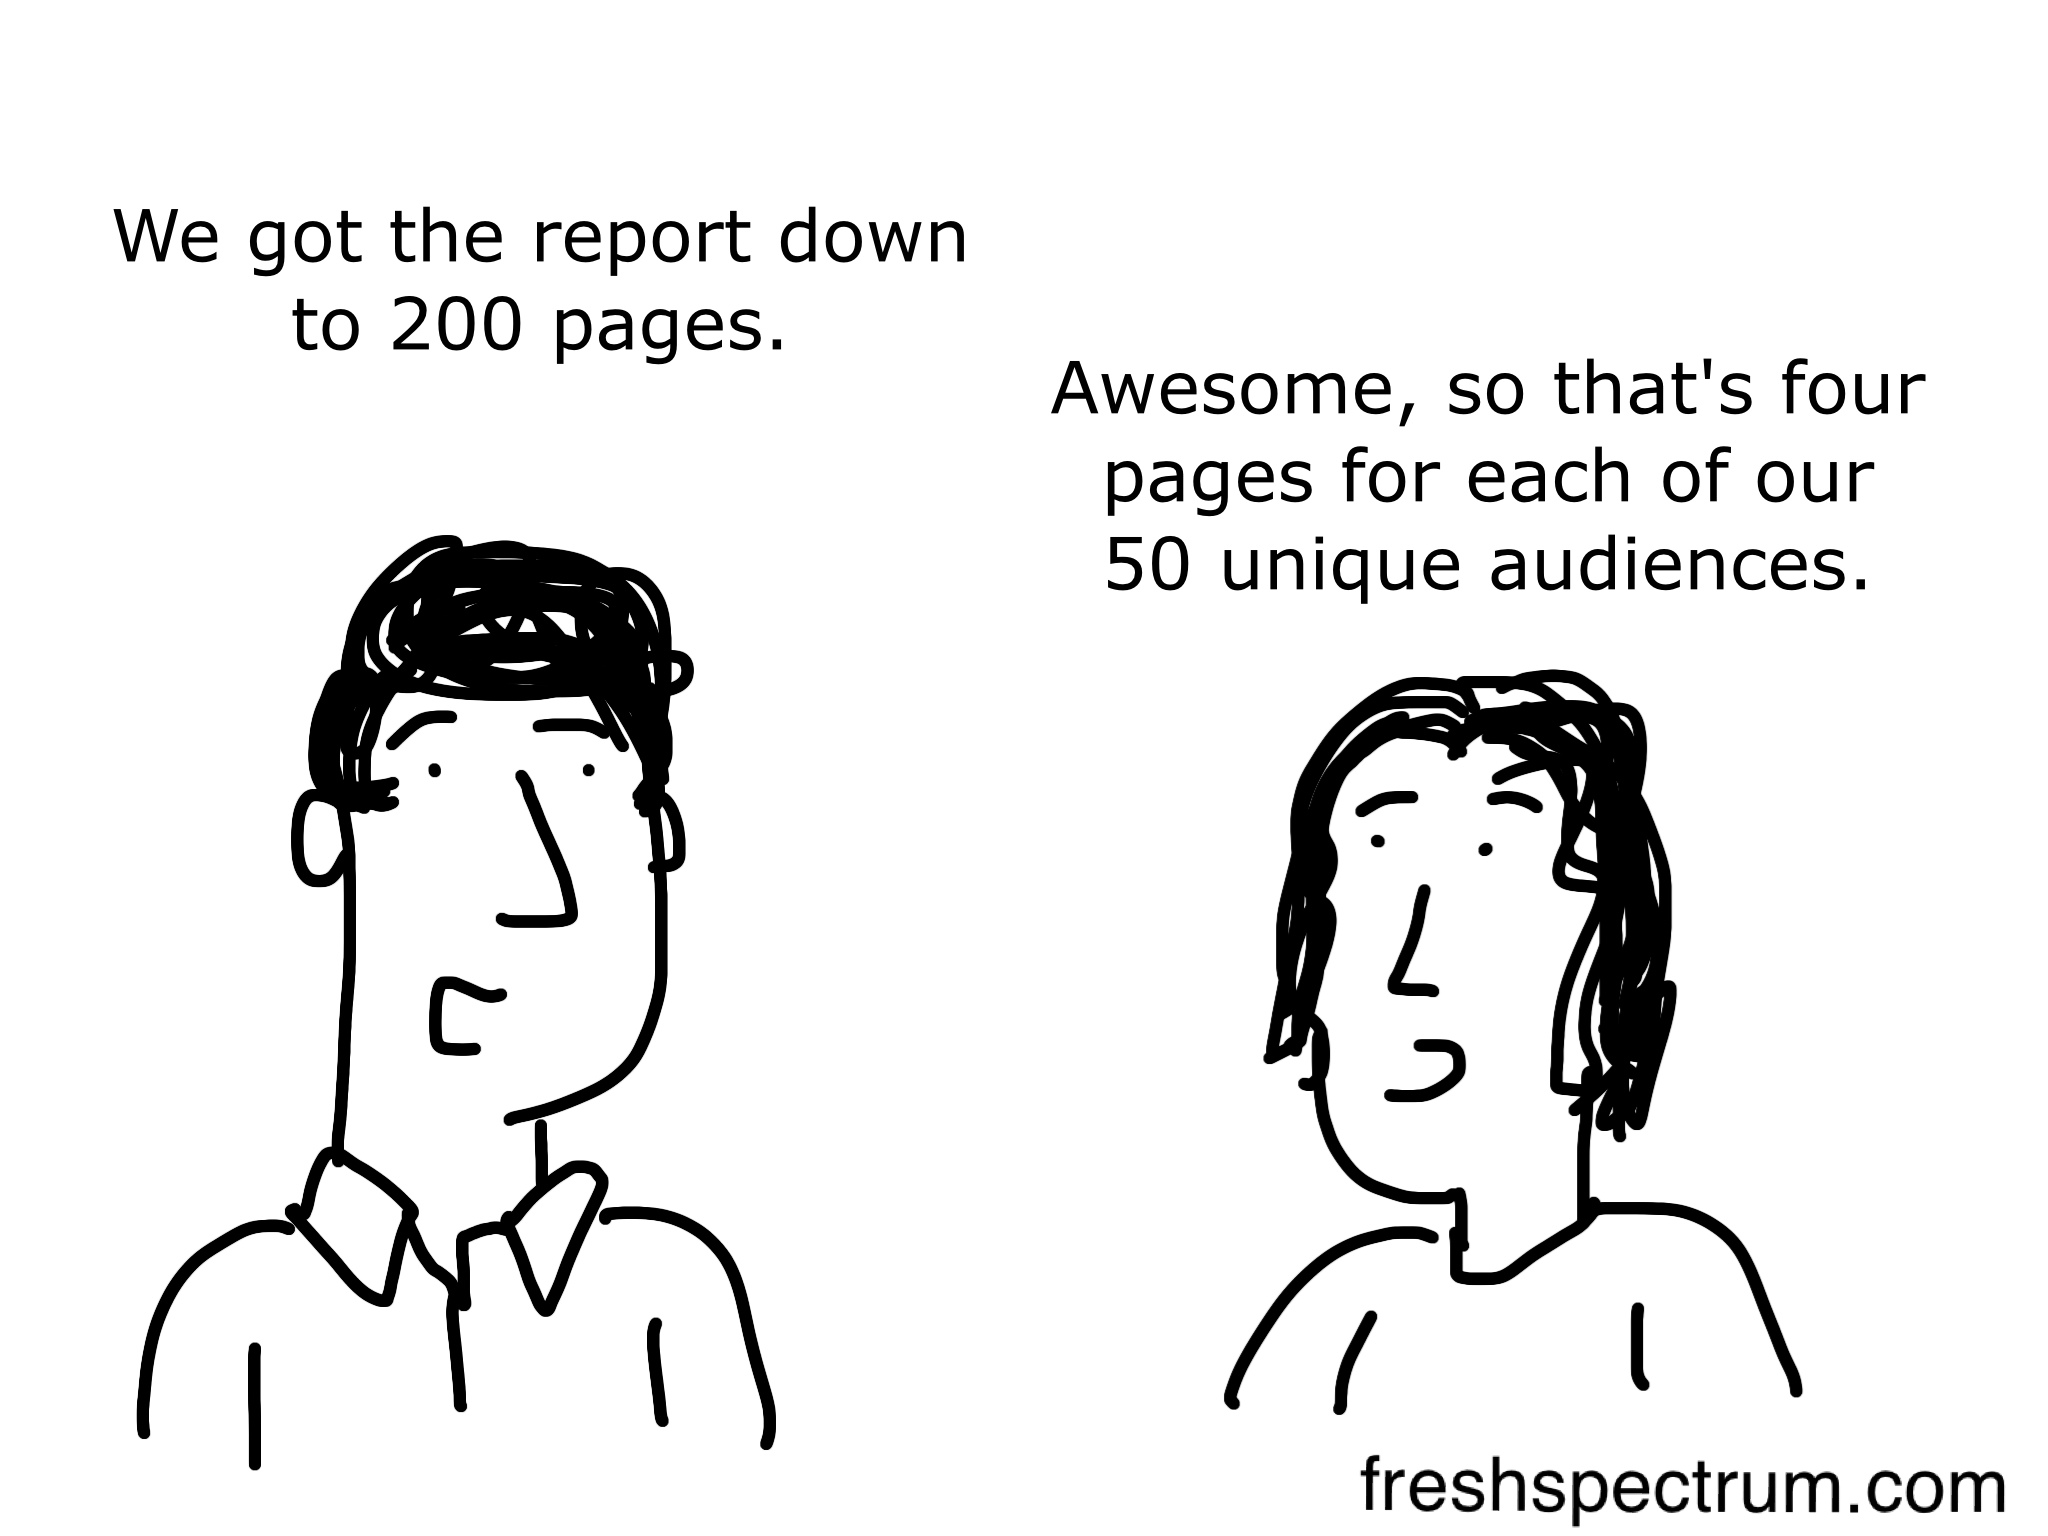 200 page report for 50 audience cartoon by Chris Lysy